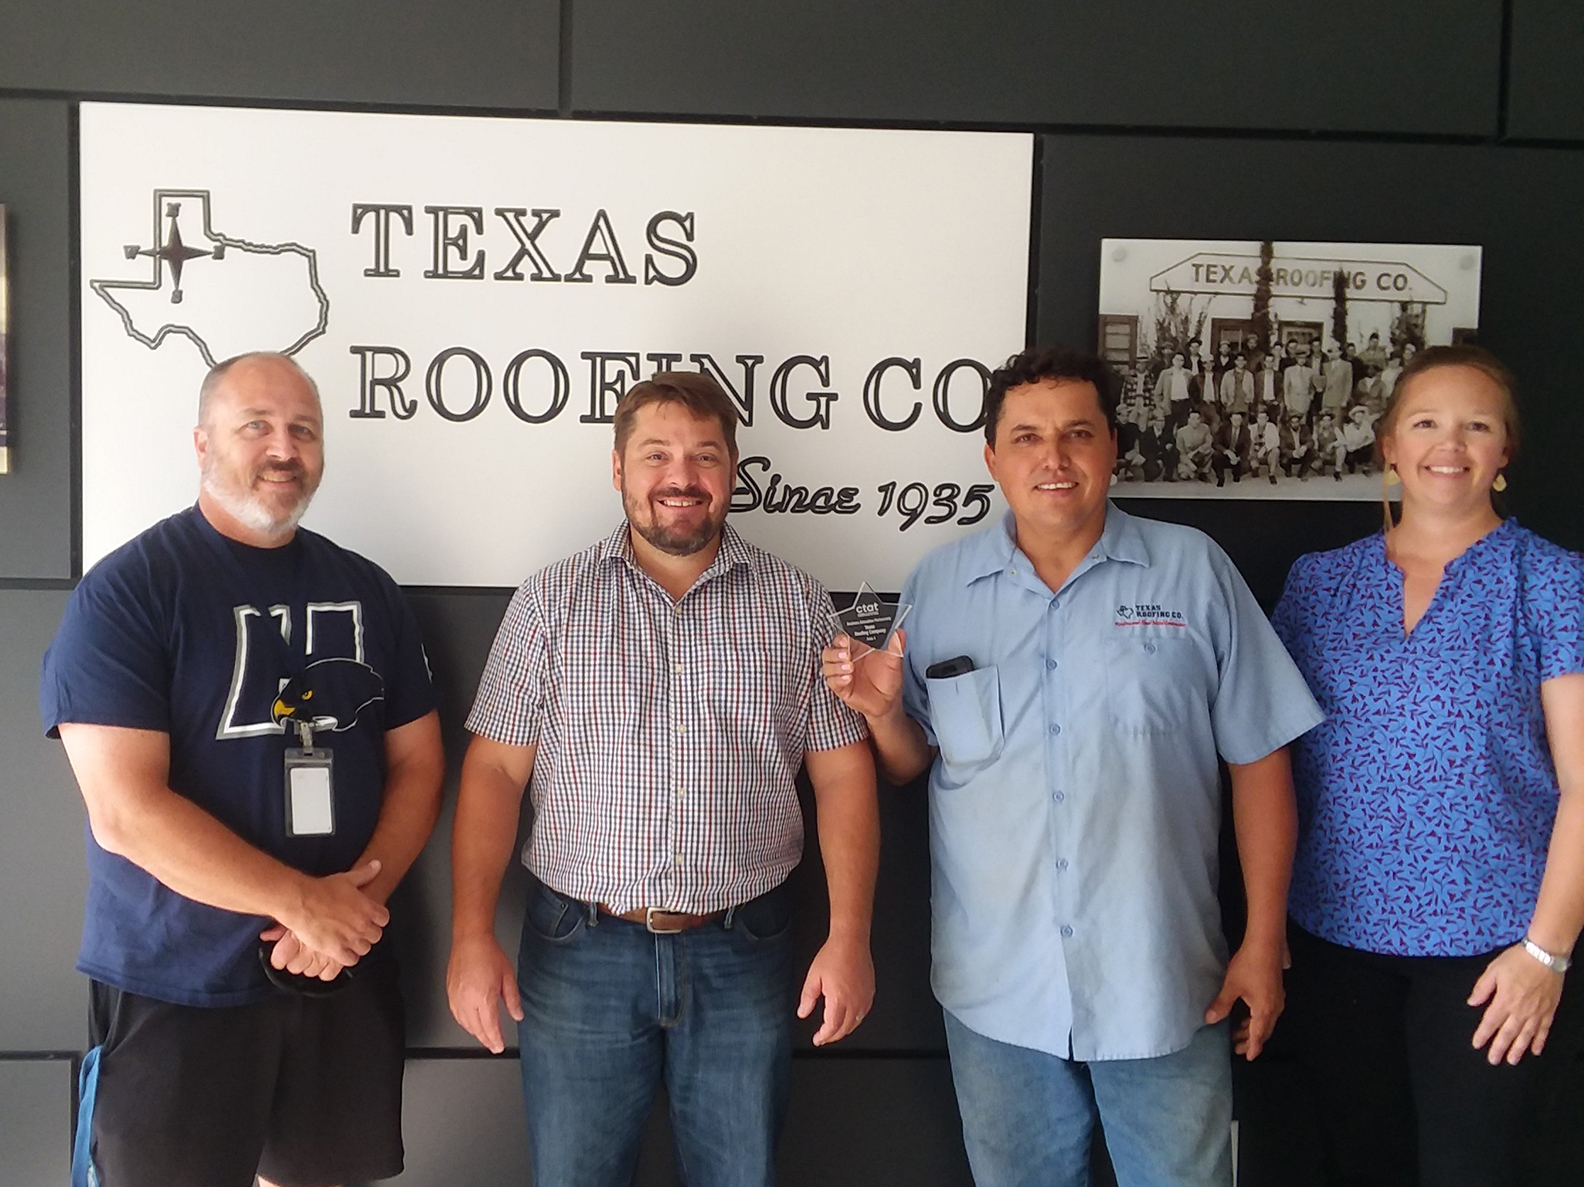 Texas Roofing, Board Member Mitchell honored by Career and Technical Association of Texas